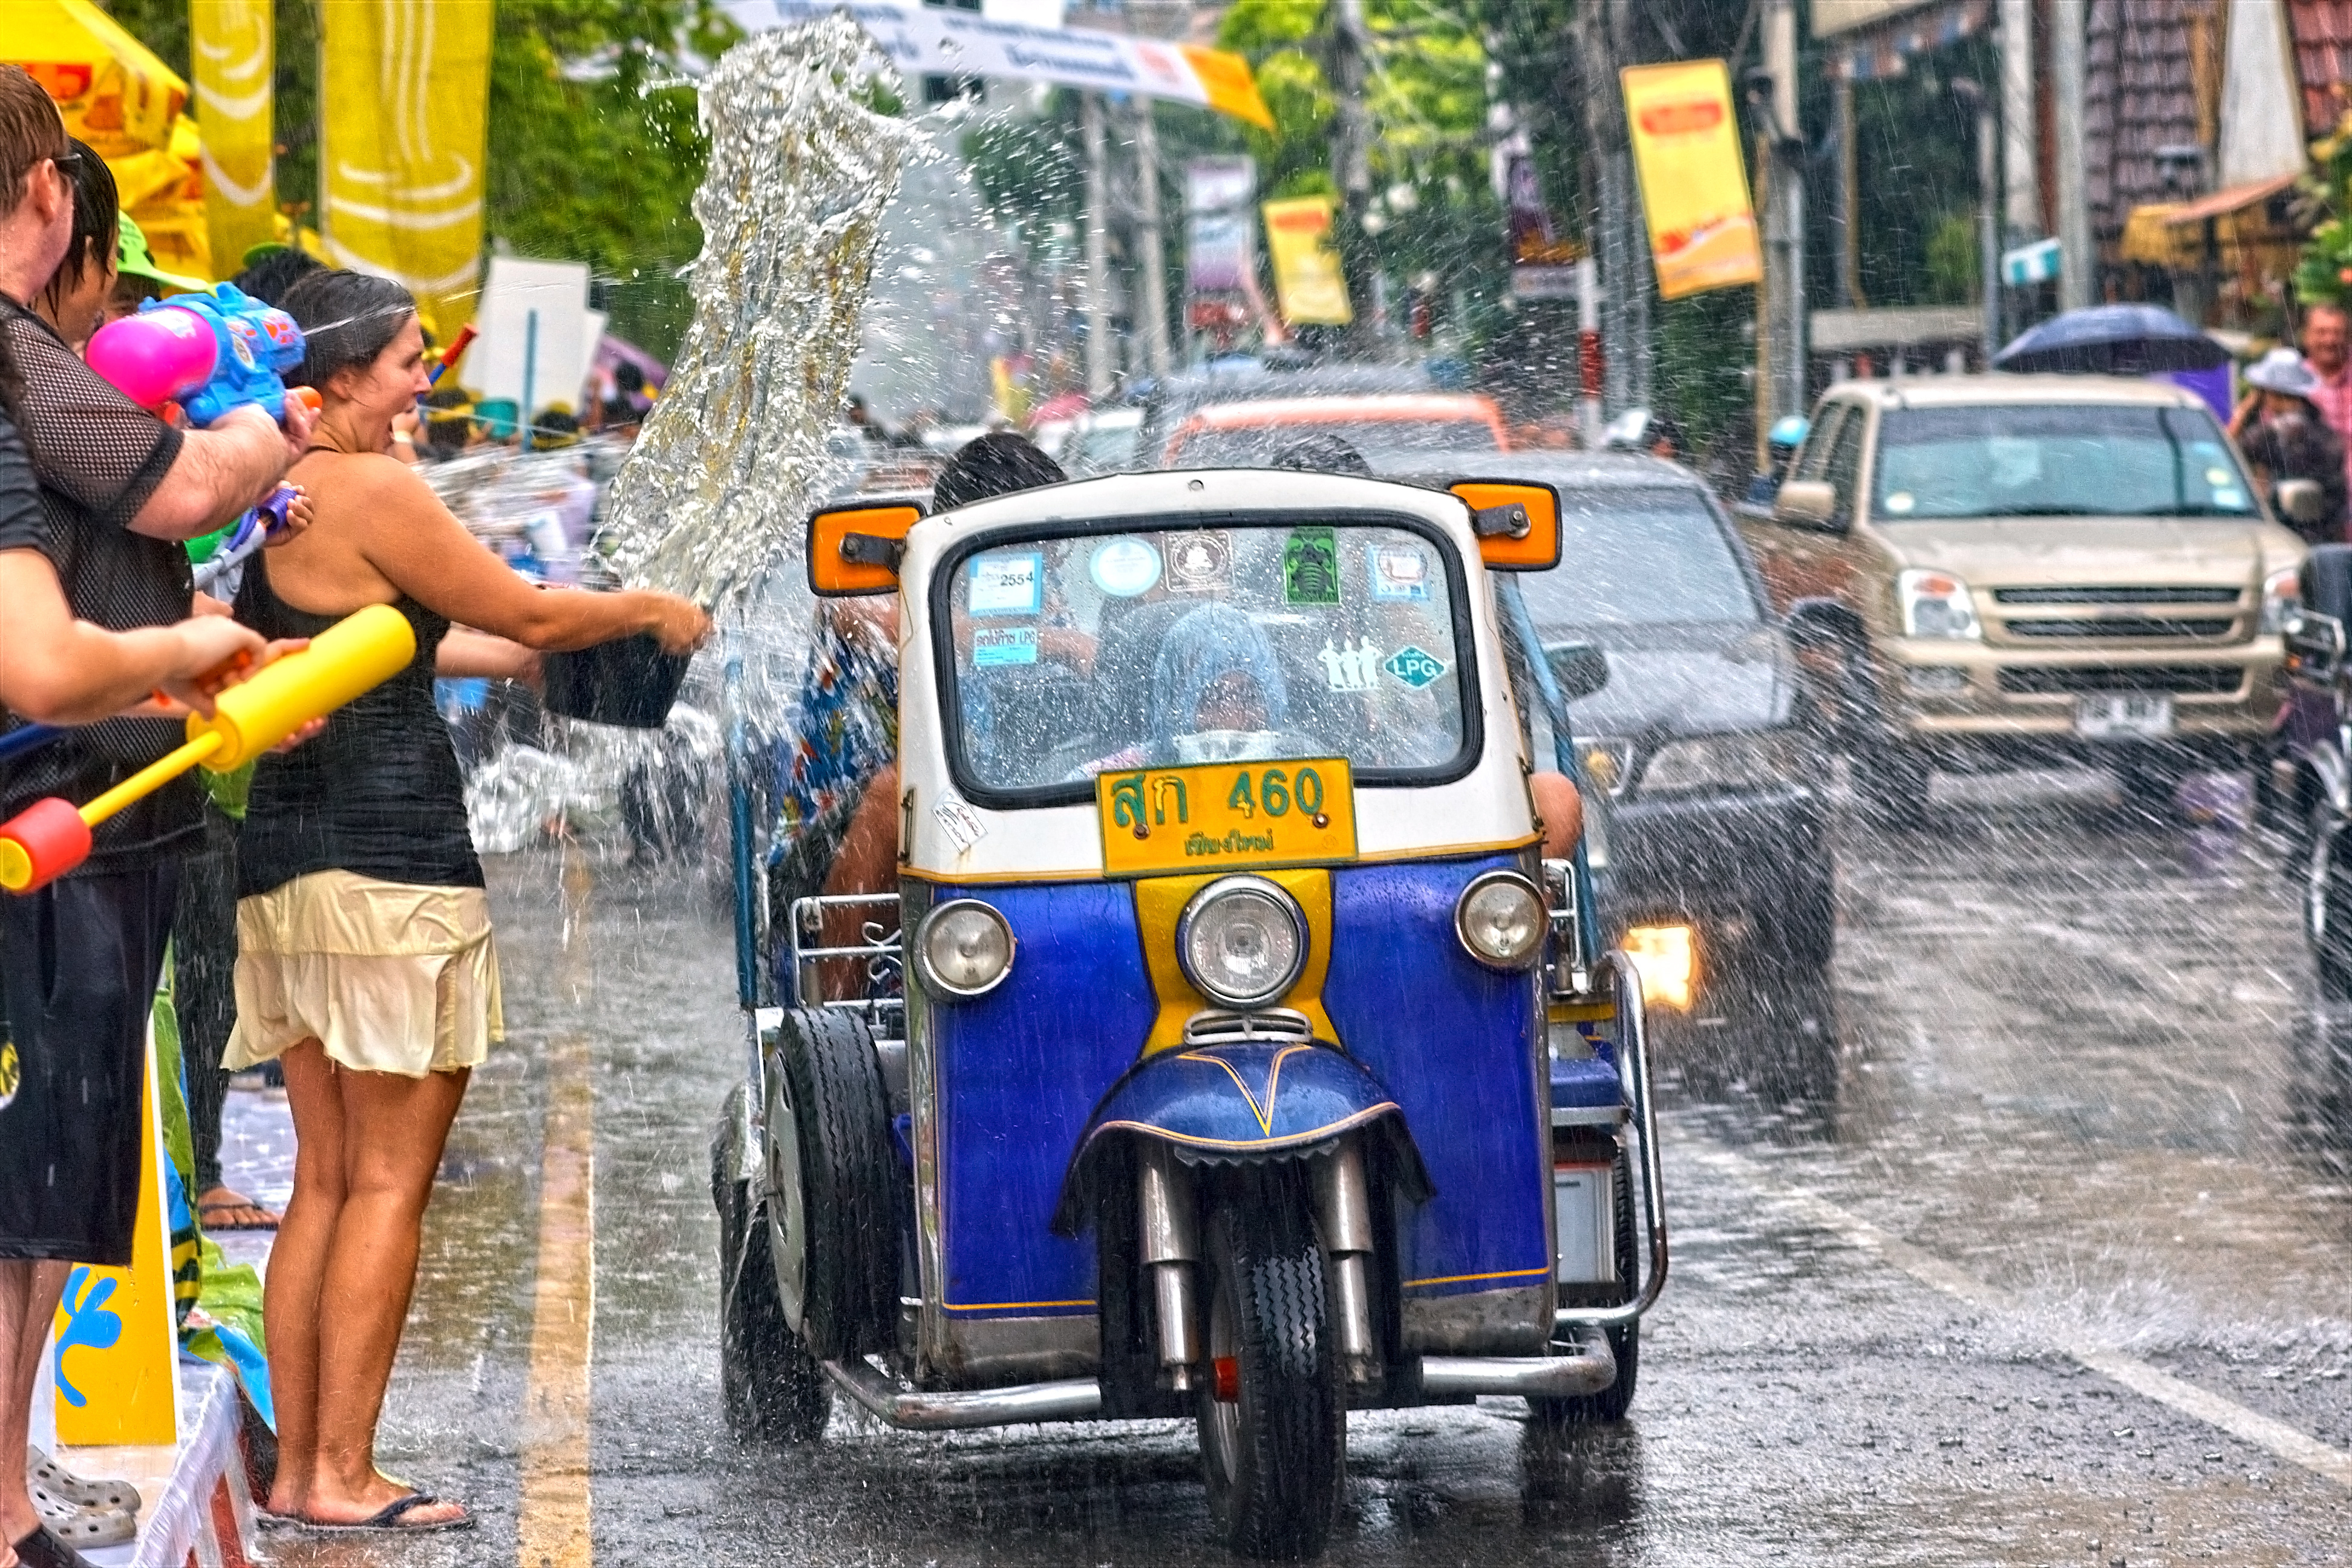 Tuk Tuk being doused with water at Songkran Festival.Chiang Mai, Chiang Mai, Thailand, South-East Asia, Asia